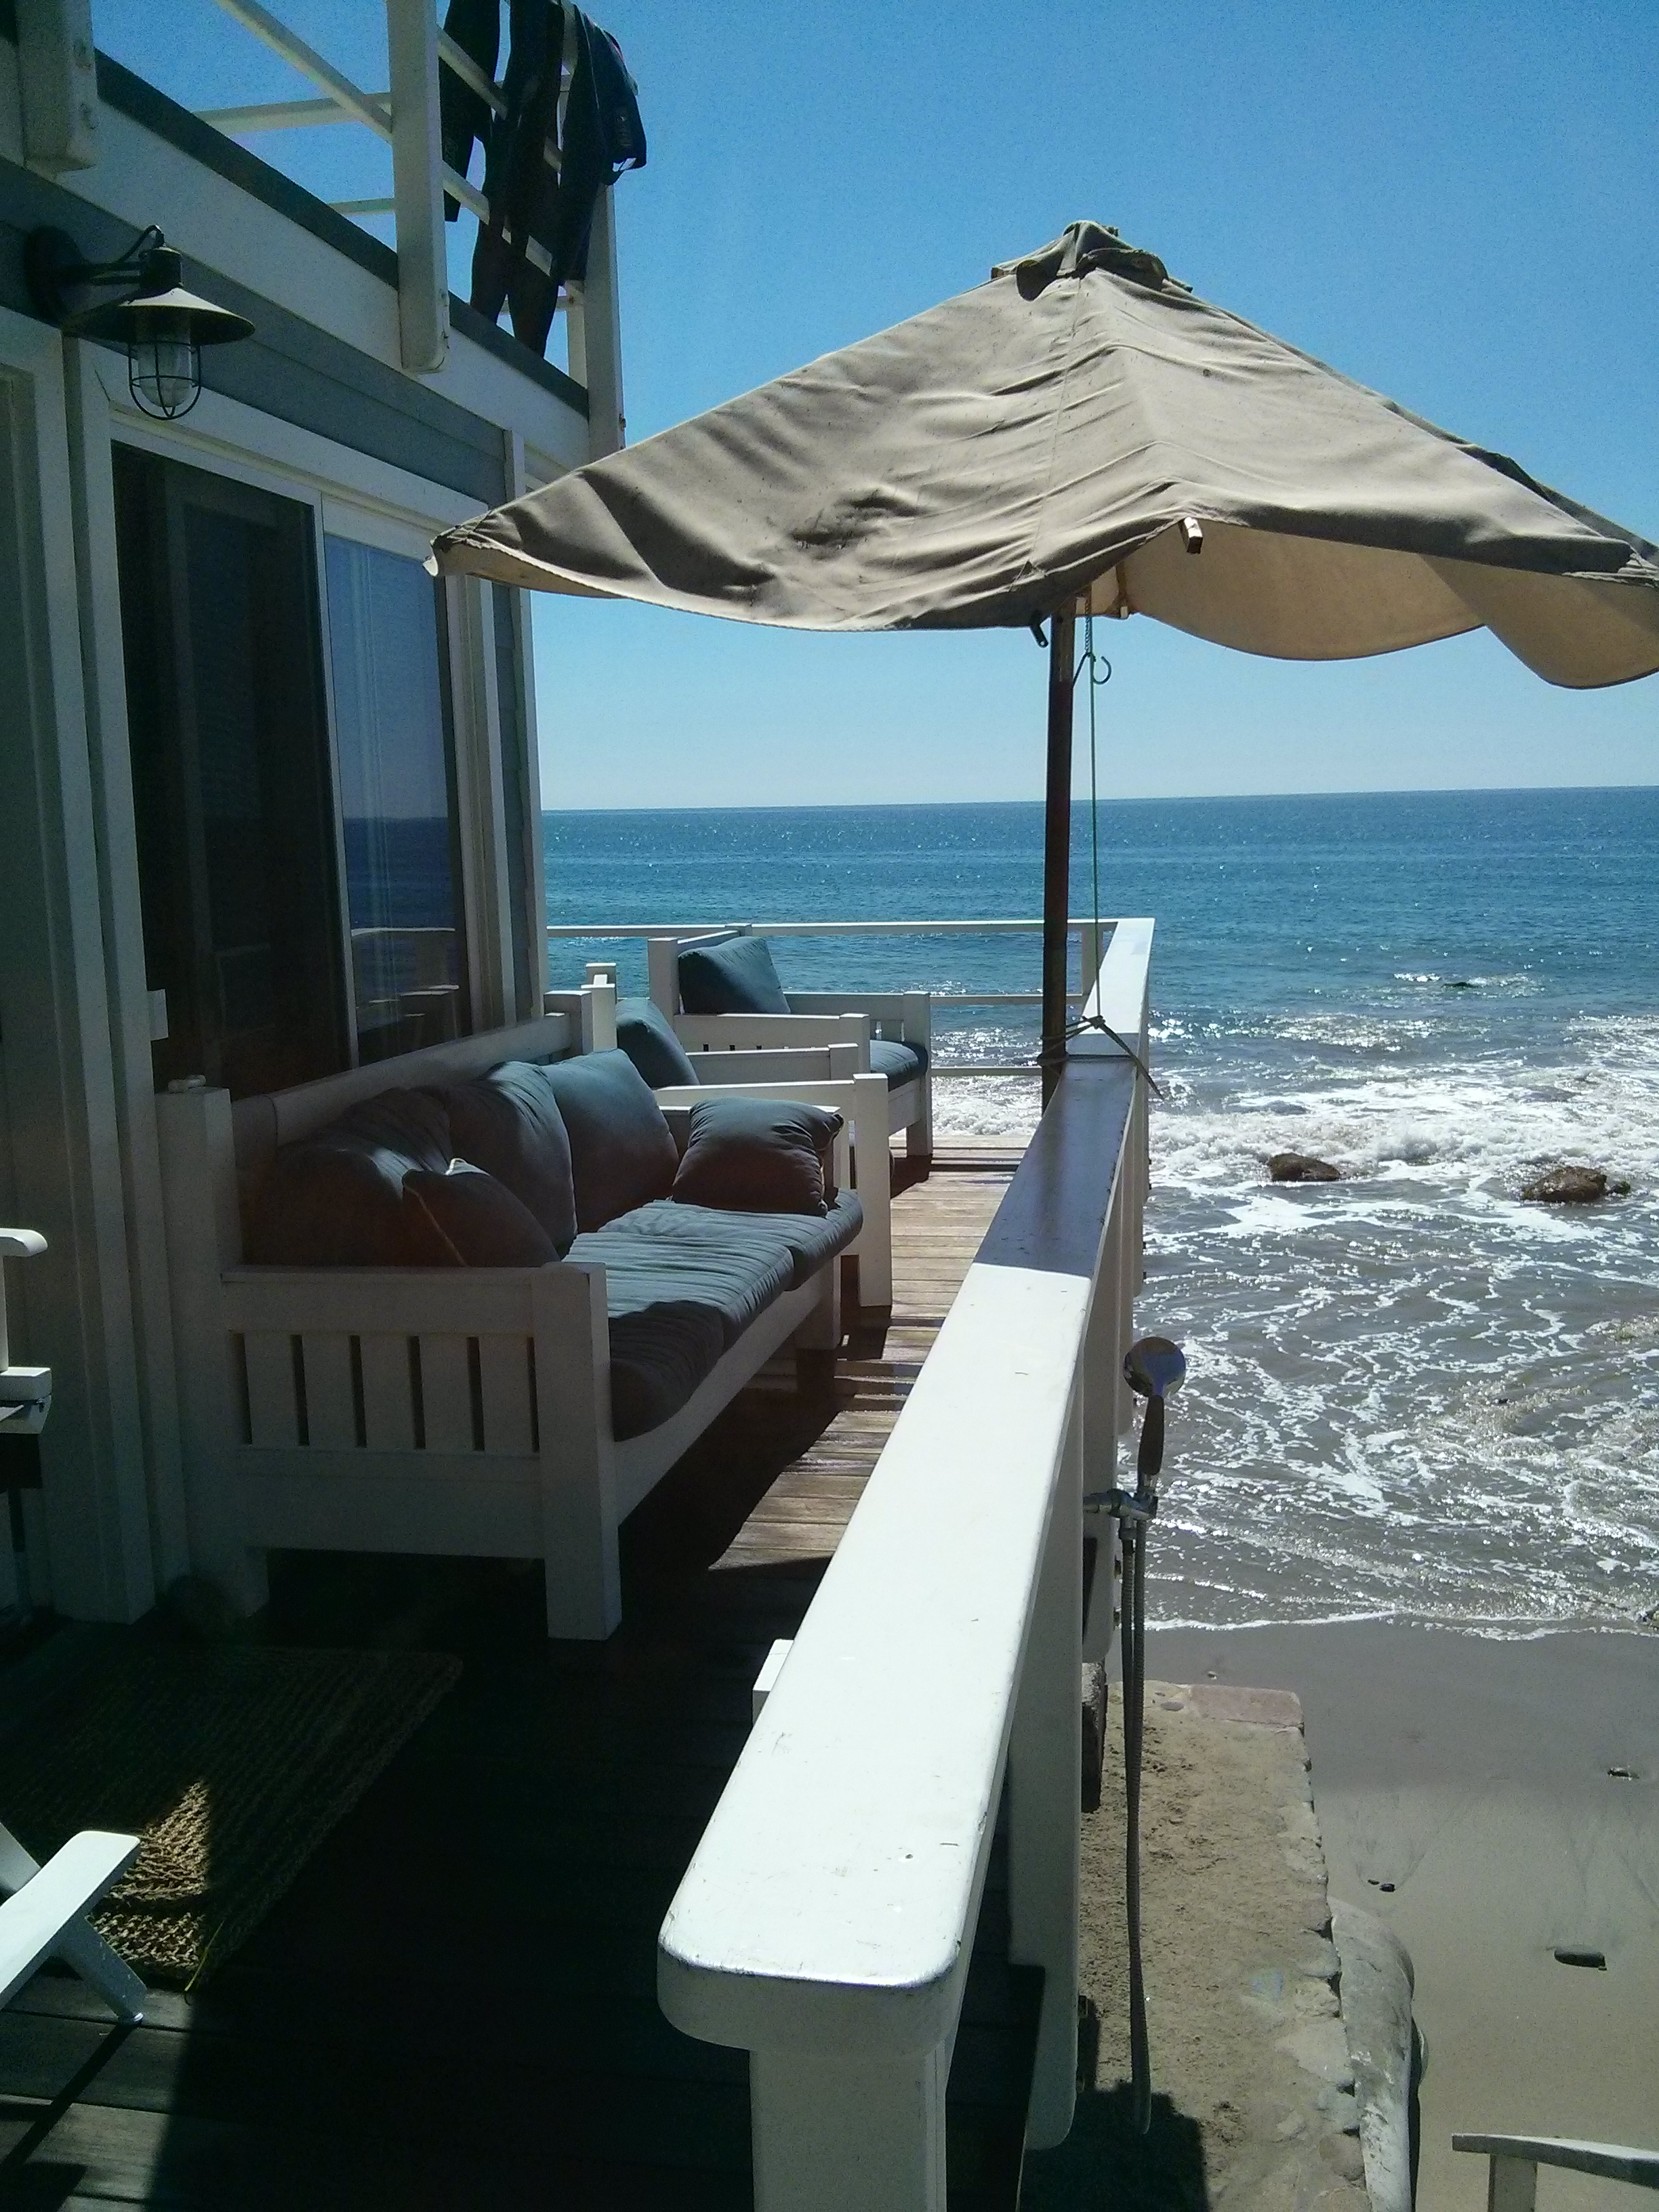 Window Screens in Malibu Summer Beach House